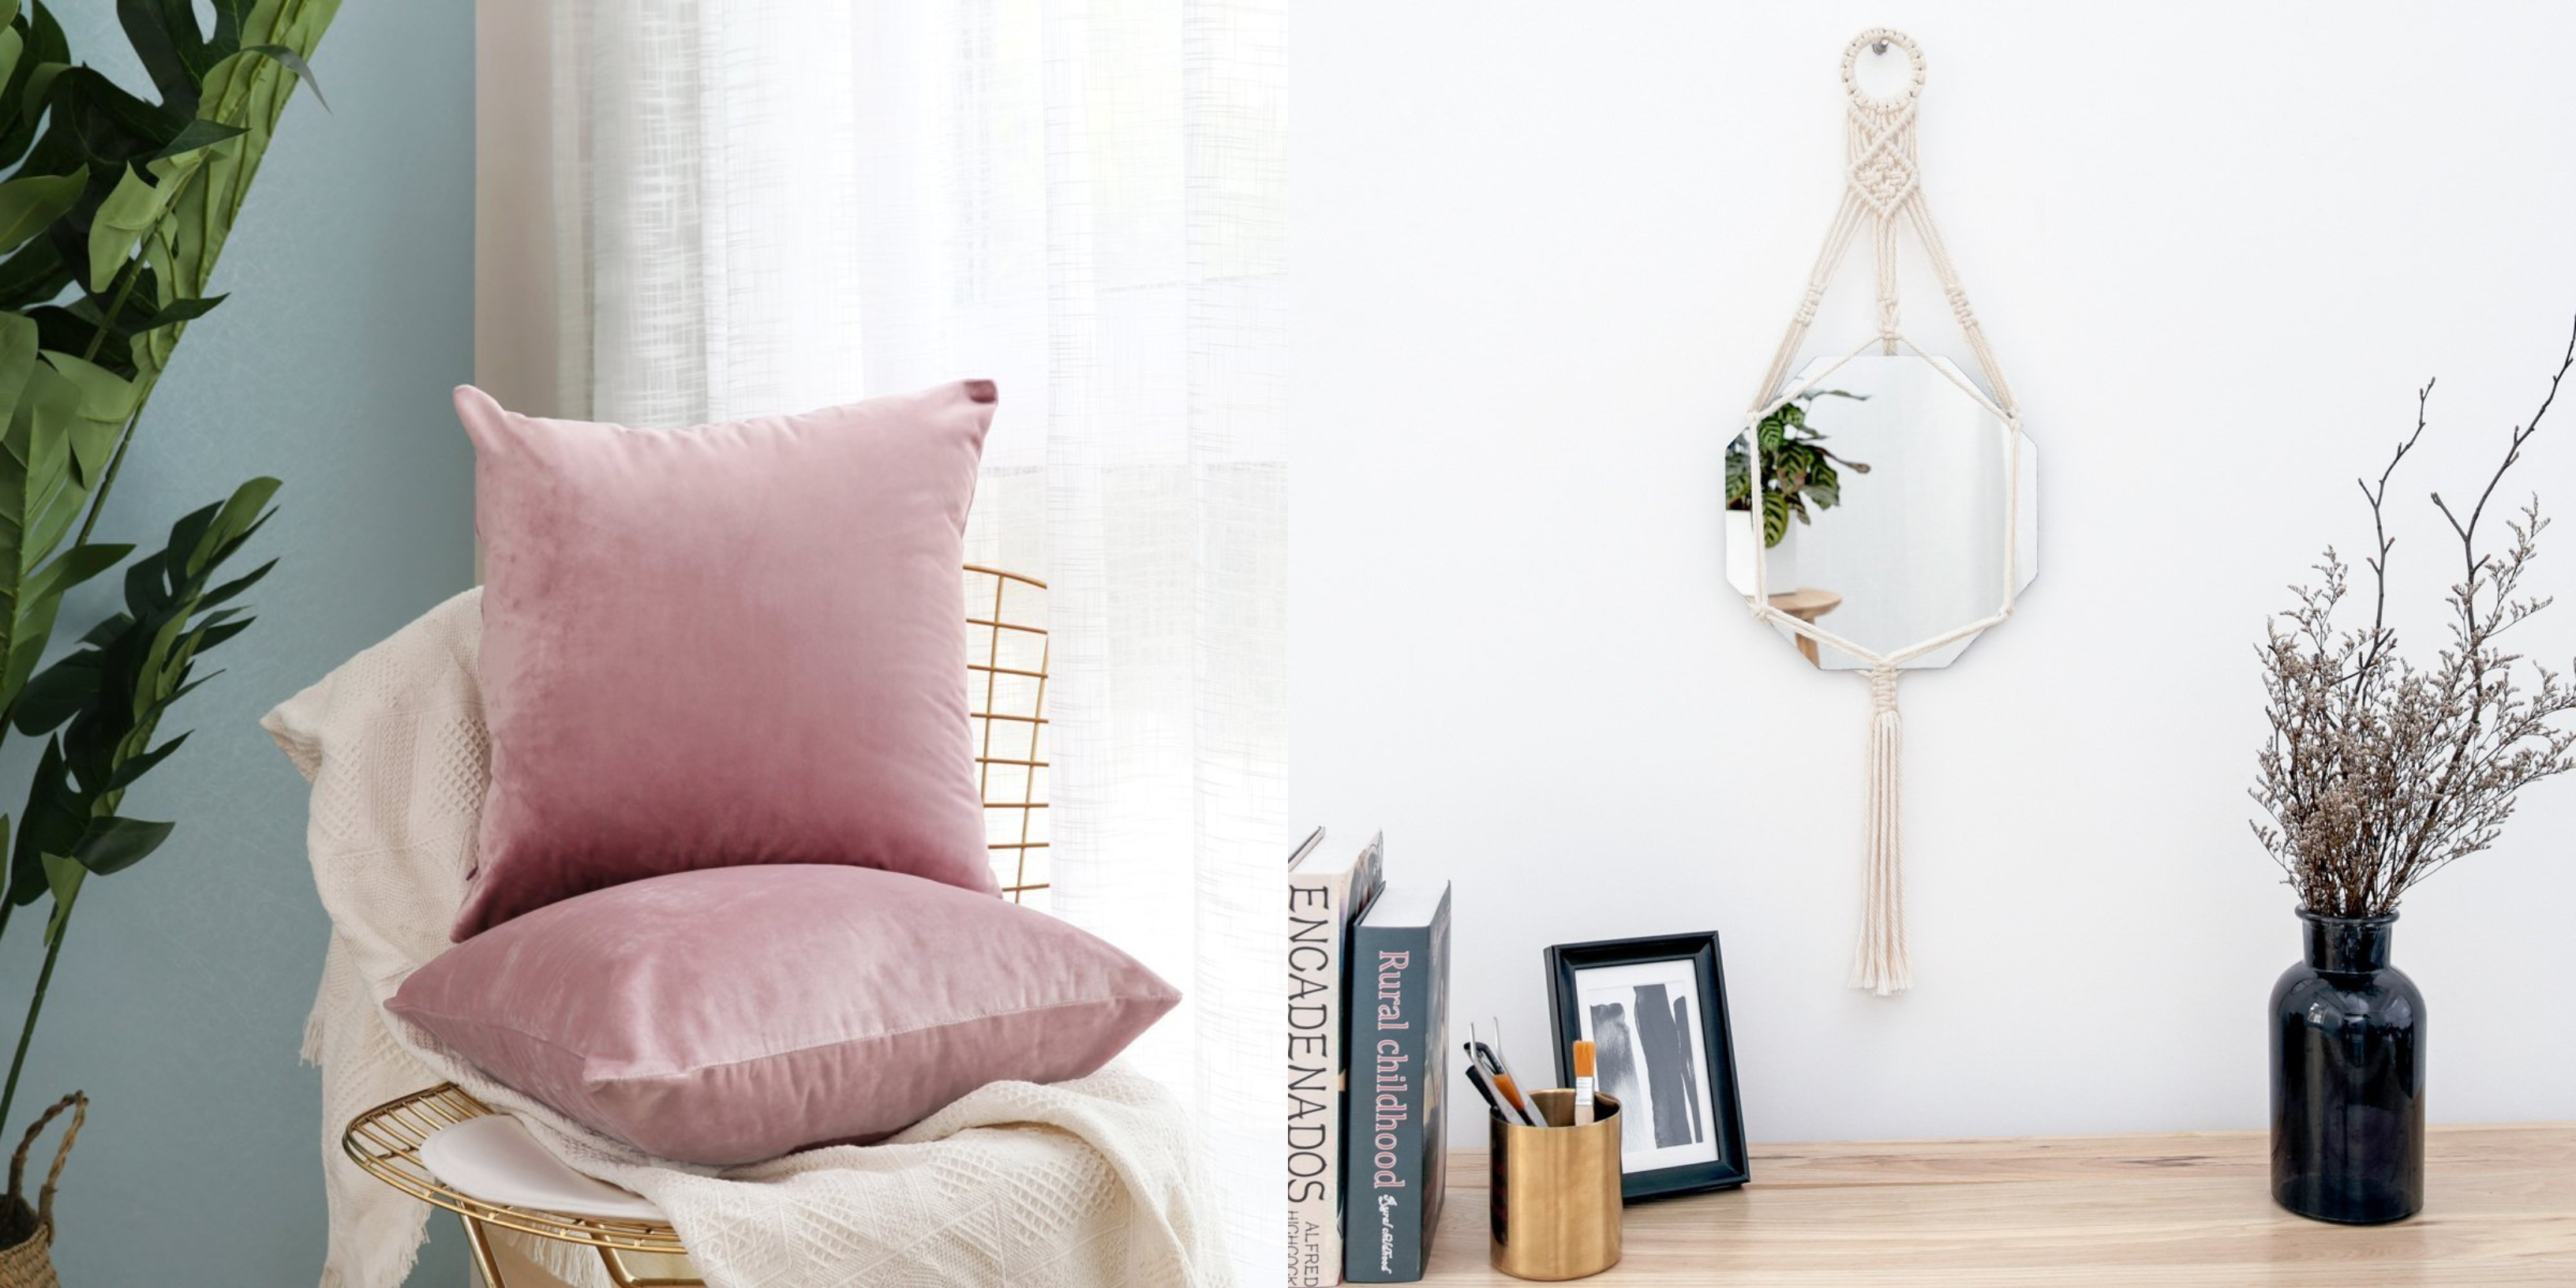 11 Home Decor Products On Chic Yet Affordable